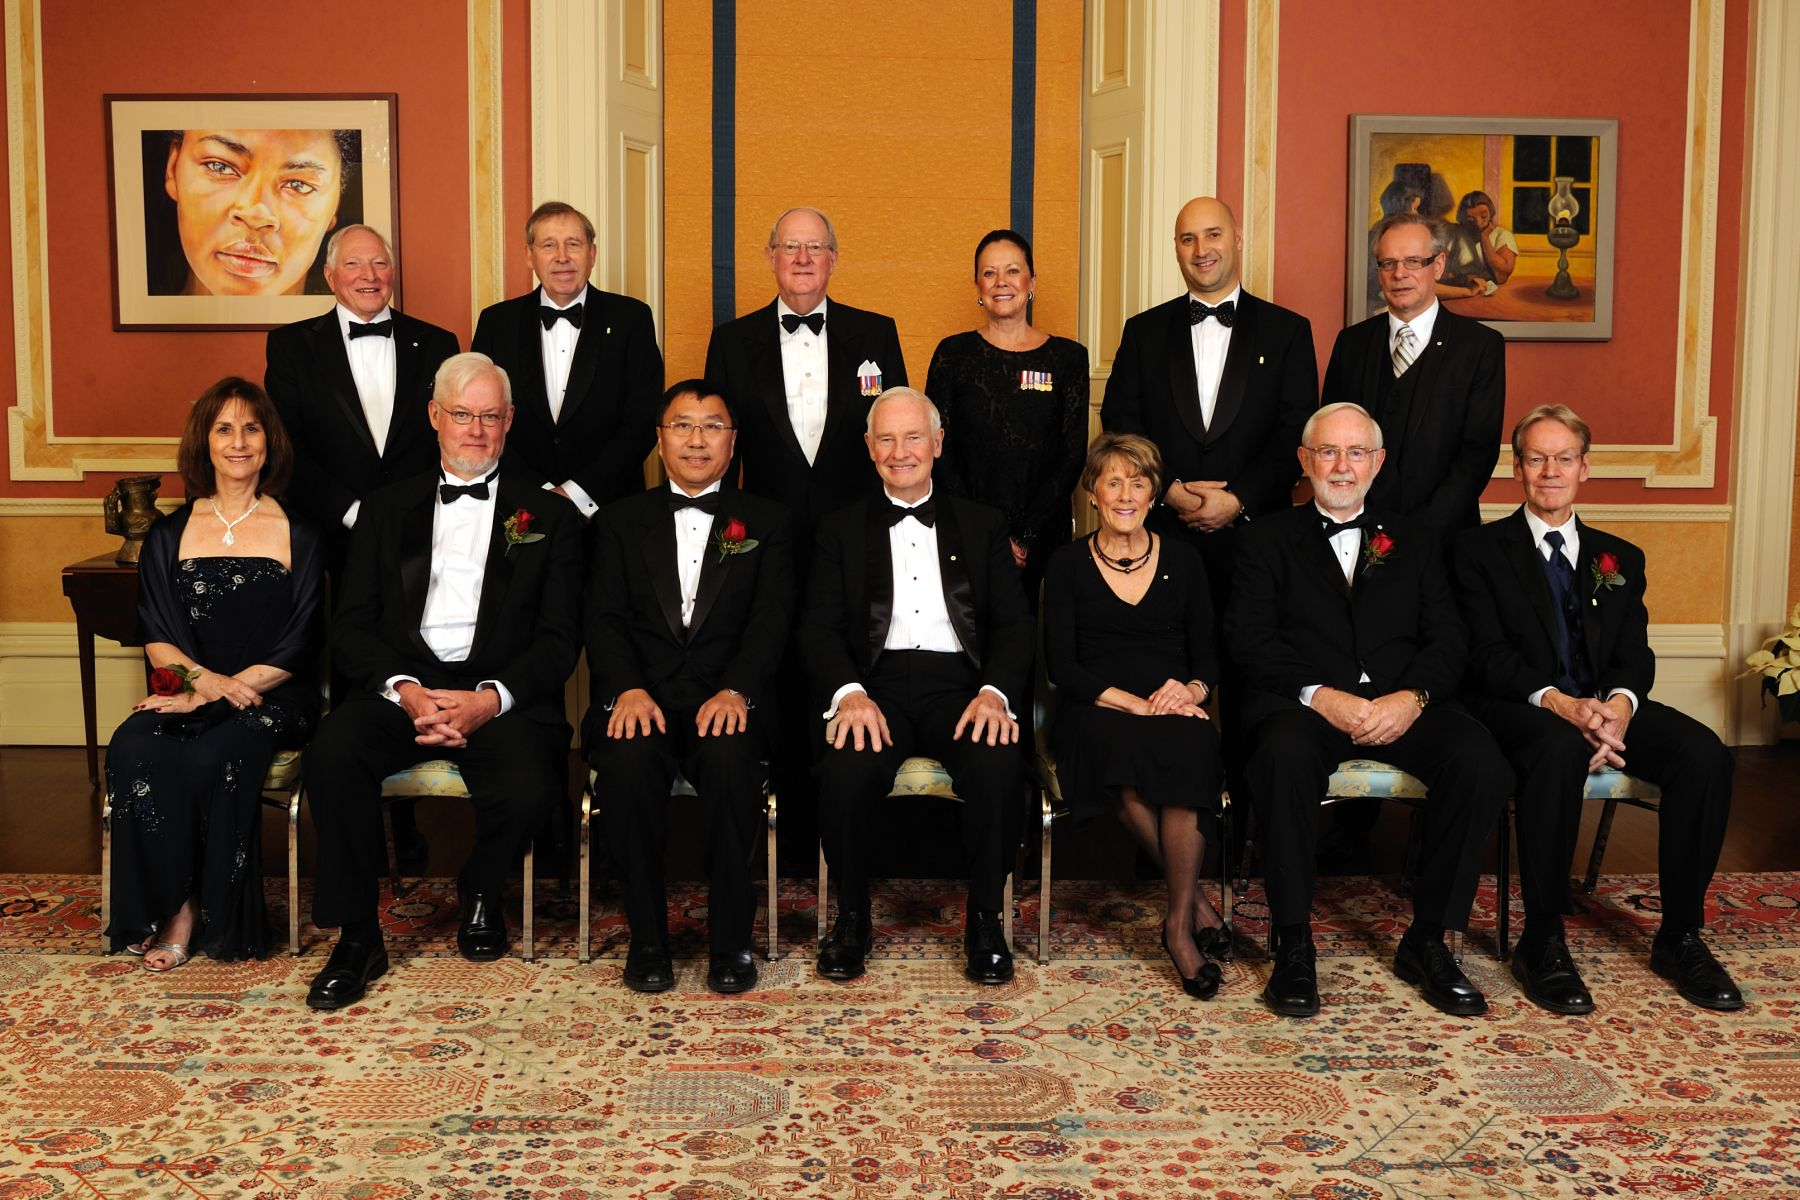 Official photo of Their Excellencies with the 2010 Killam Prizes recipients.